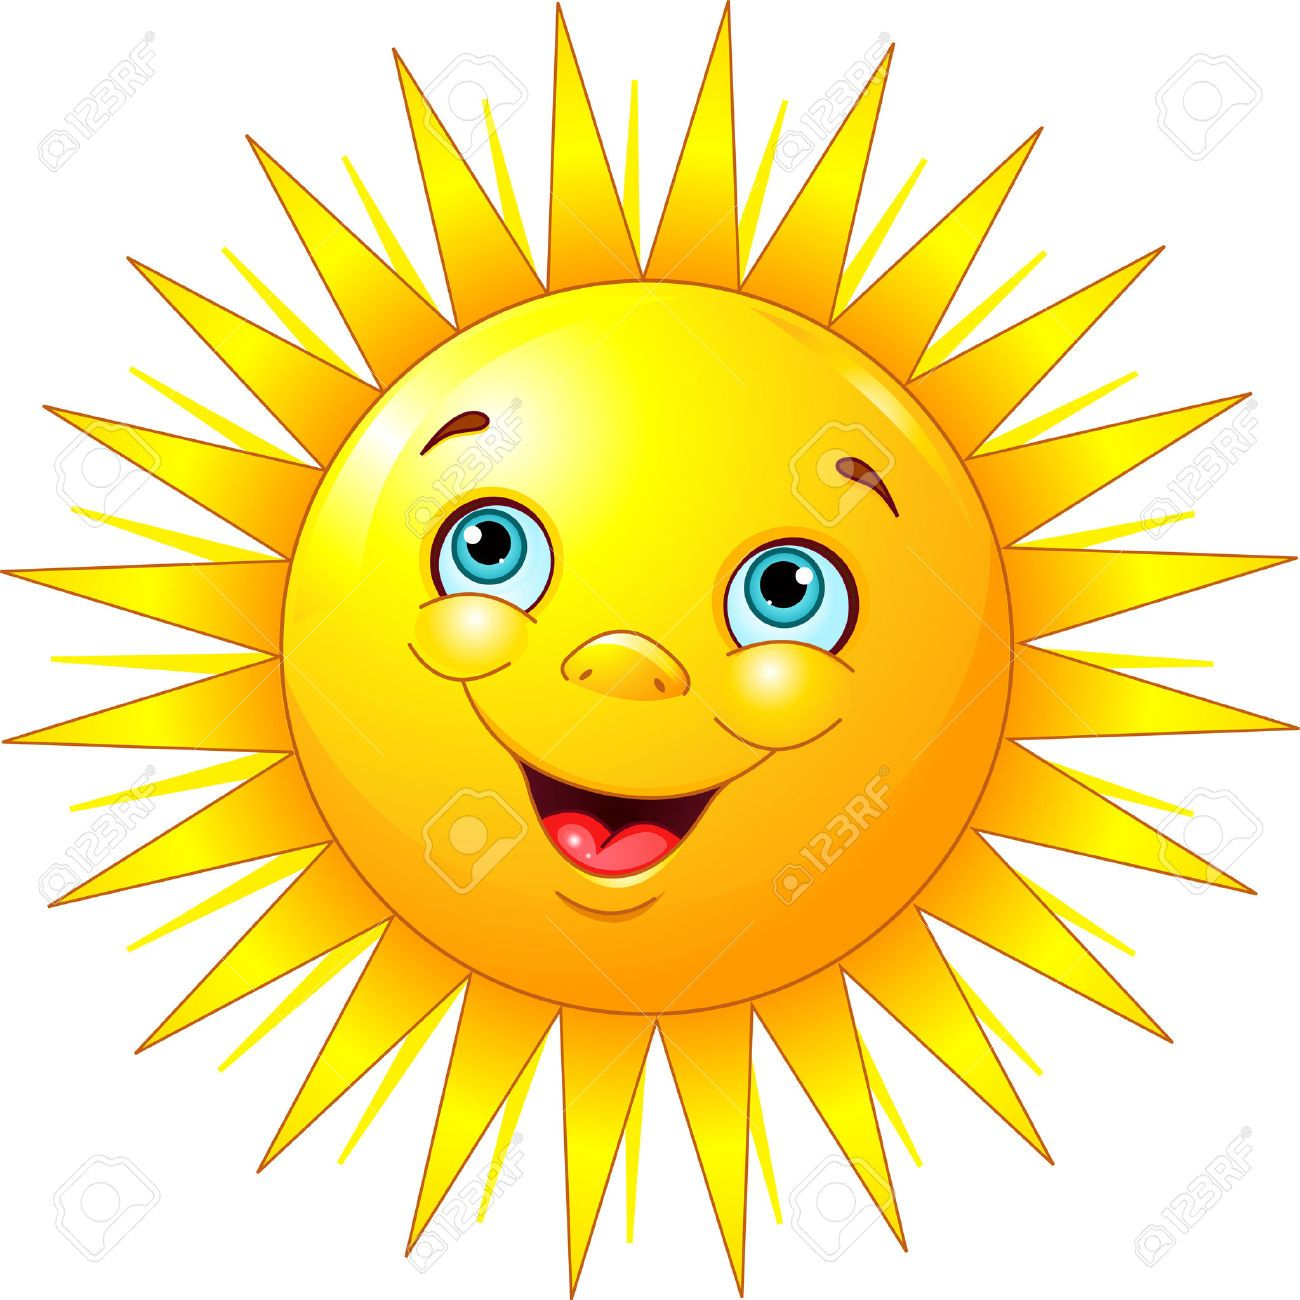 Clipart sunimages graphic library library Sun Images, Stock Pictures, Royalty Free Sun Photos And Stock ... graphic library library